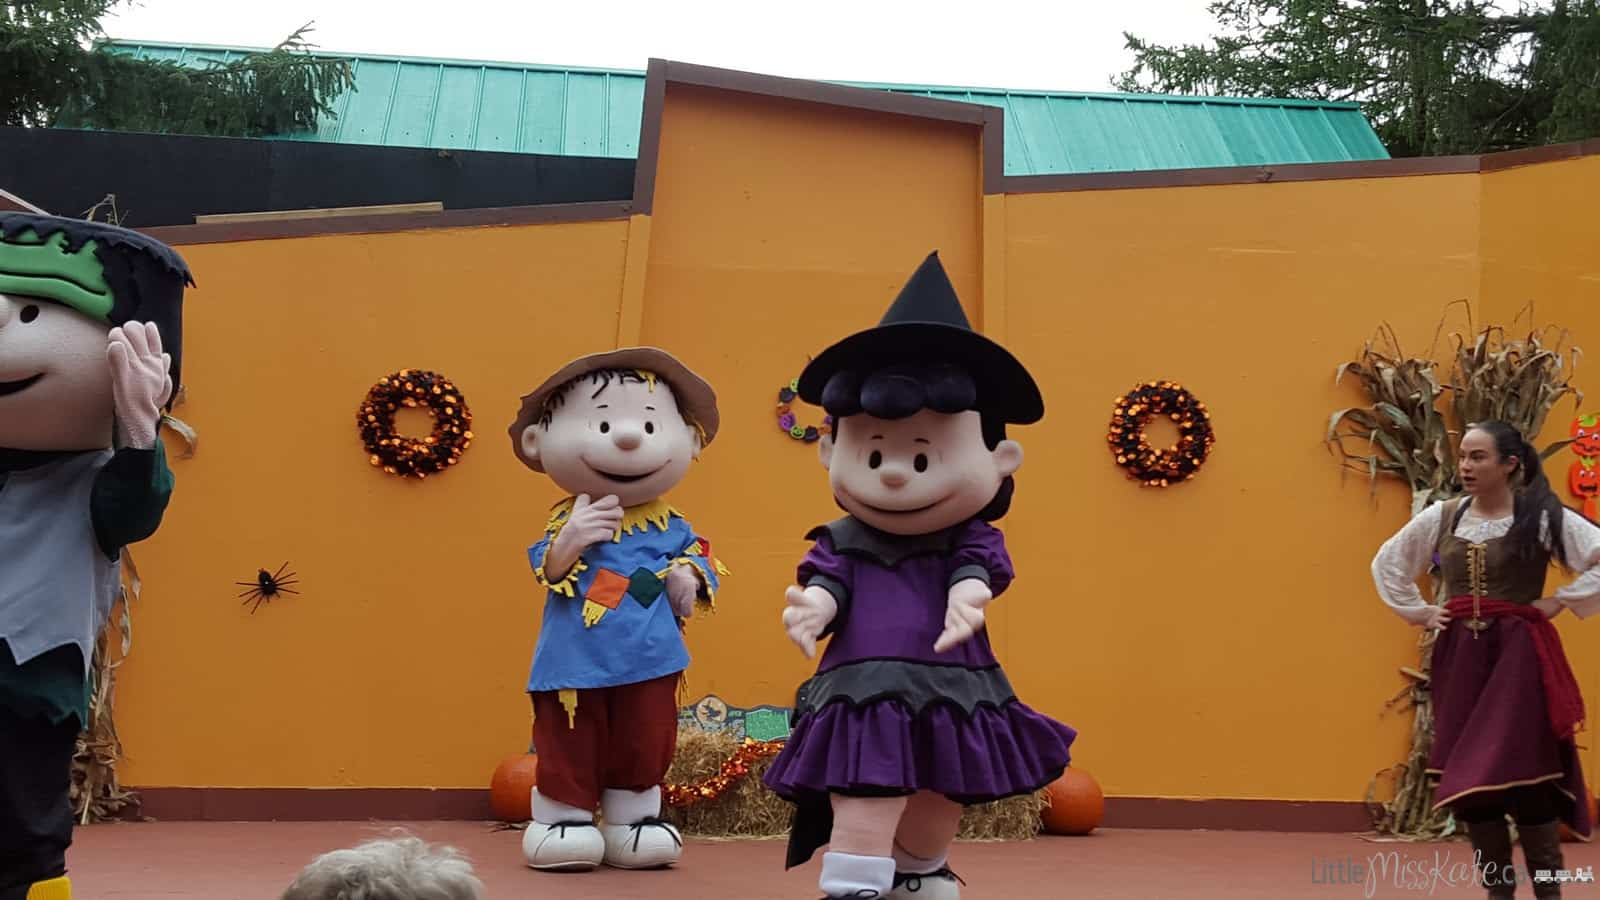 5 things you need to know about Camp Spooky Halloween at Canada's Wonderland